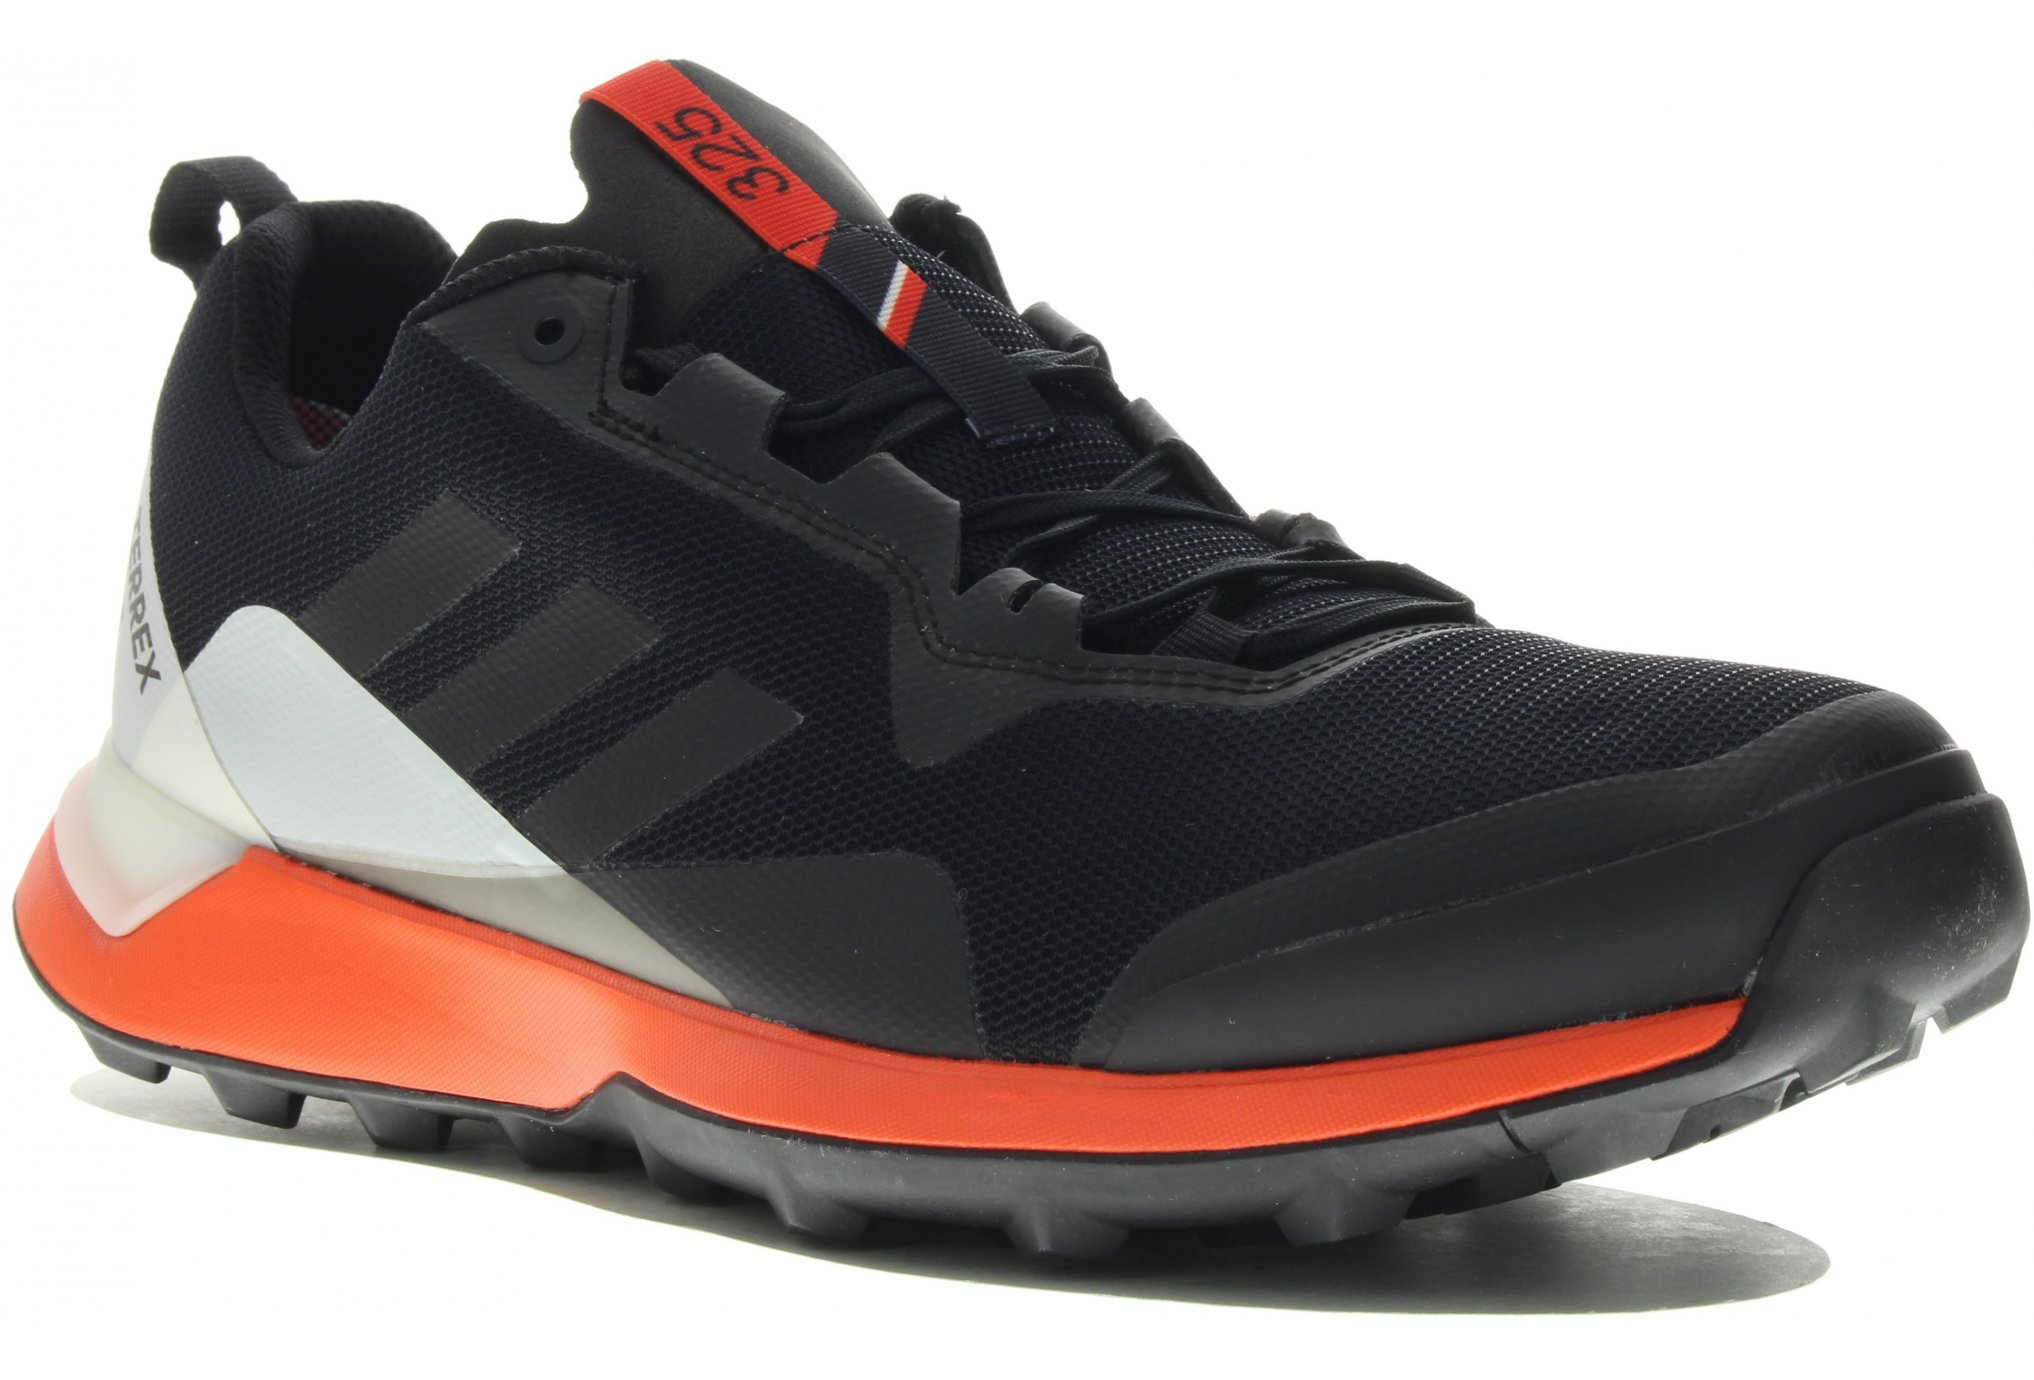 lowest price 6a047 a1023 Trail Session Session Session adidas Terrex Solo M Chaussures homme 2c245f